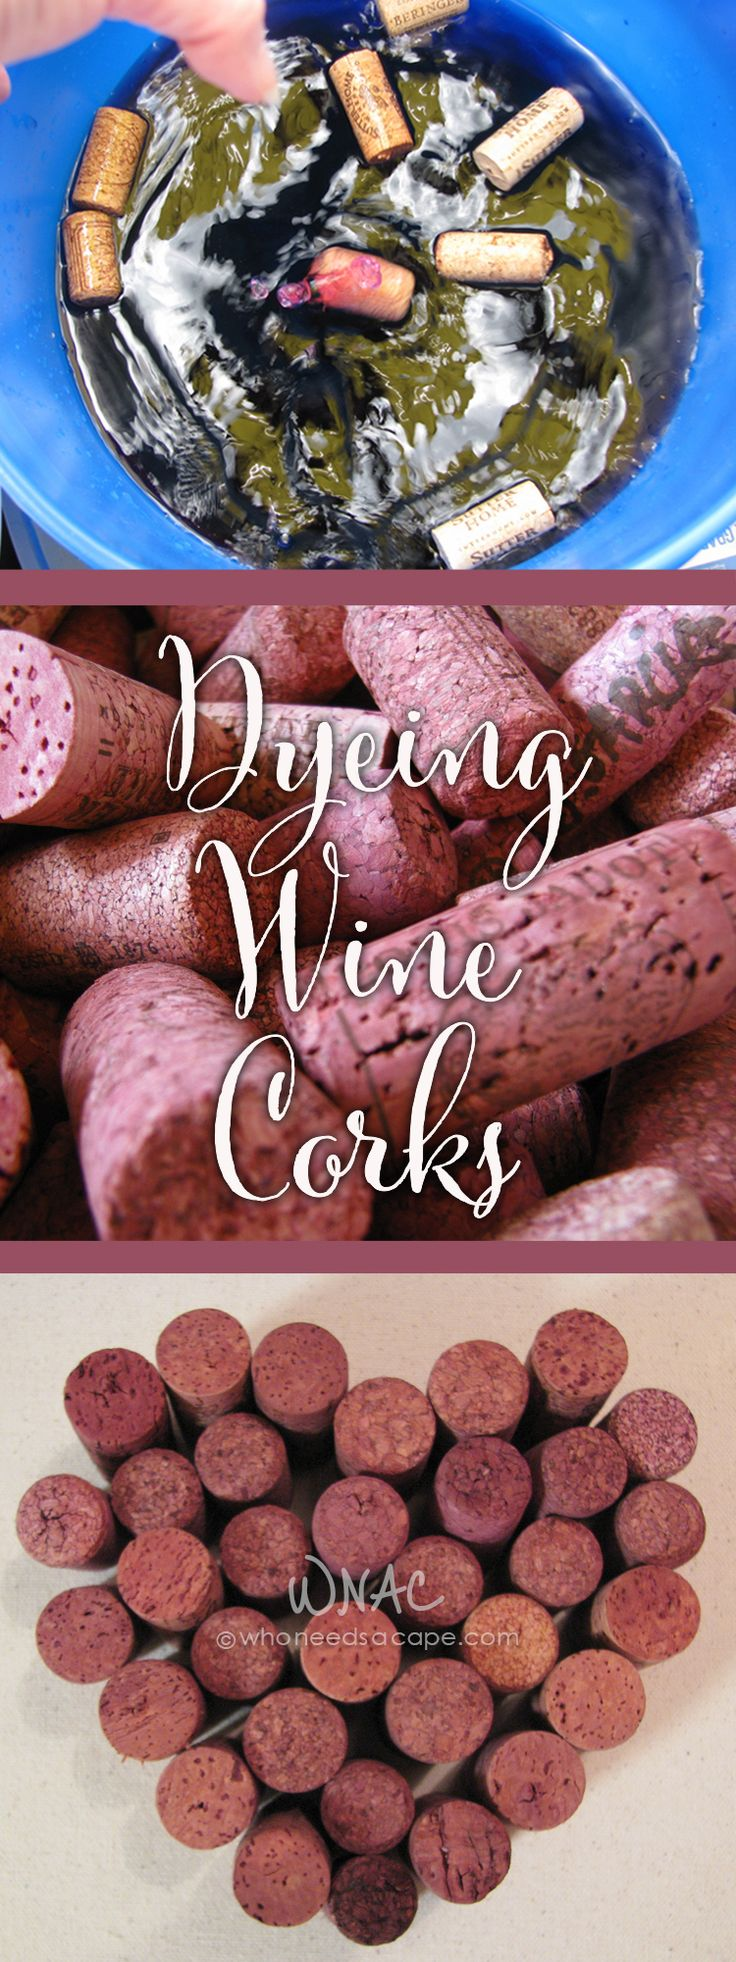 Dyeing Wine Corks collage                                                                                                                                                      More